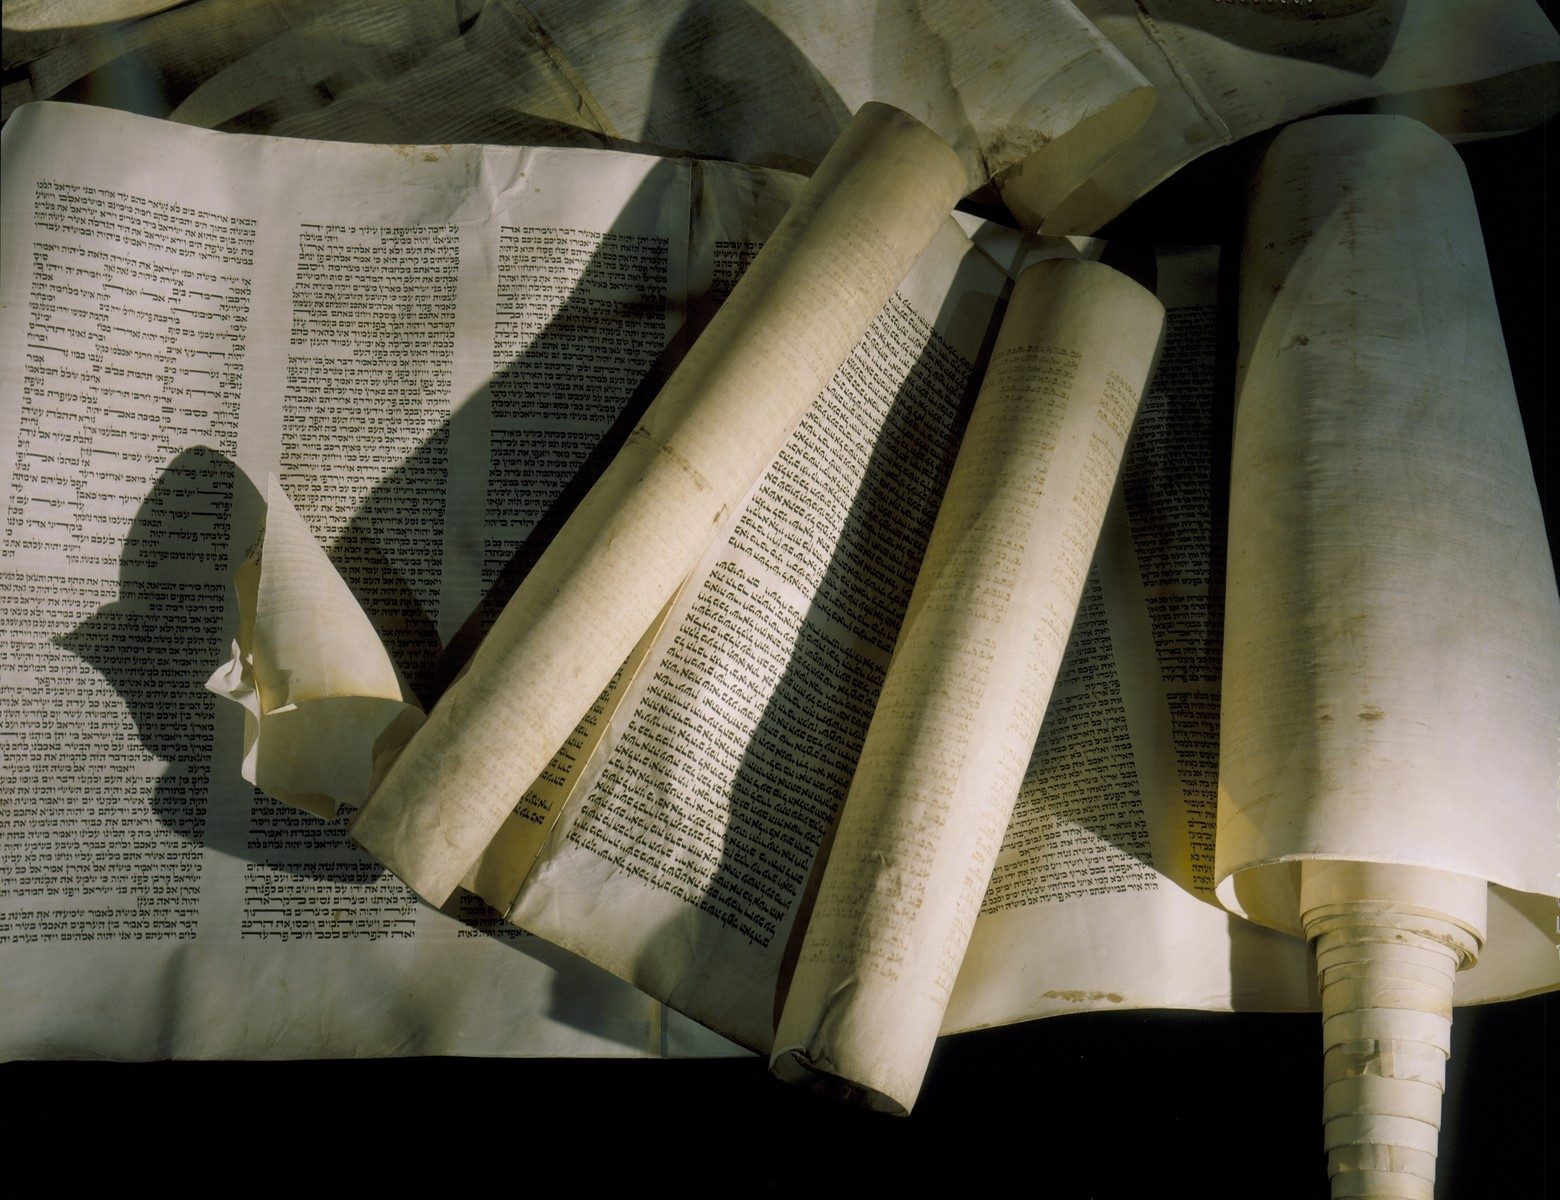 Torah scrolls desecrated during the Kristallnacht pogrom, are displayed on the fourth floor of the permanent exhibition at the U.S. Holocaust Memorial Museum.